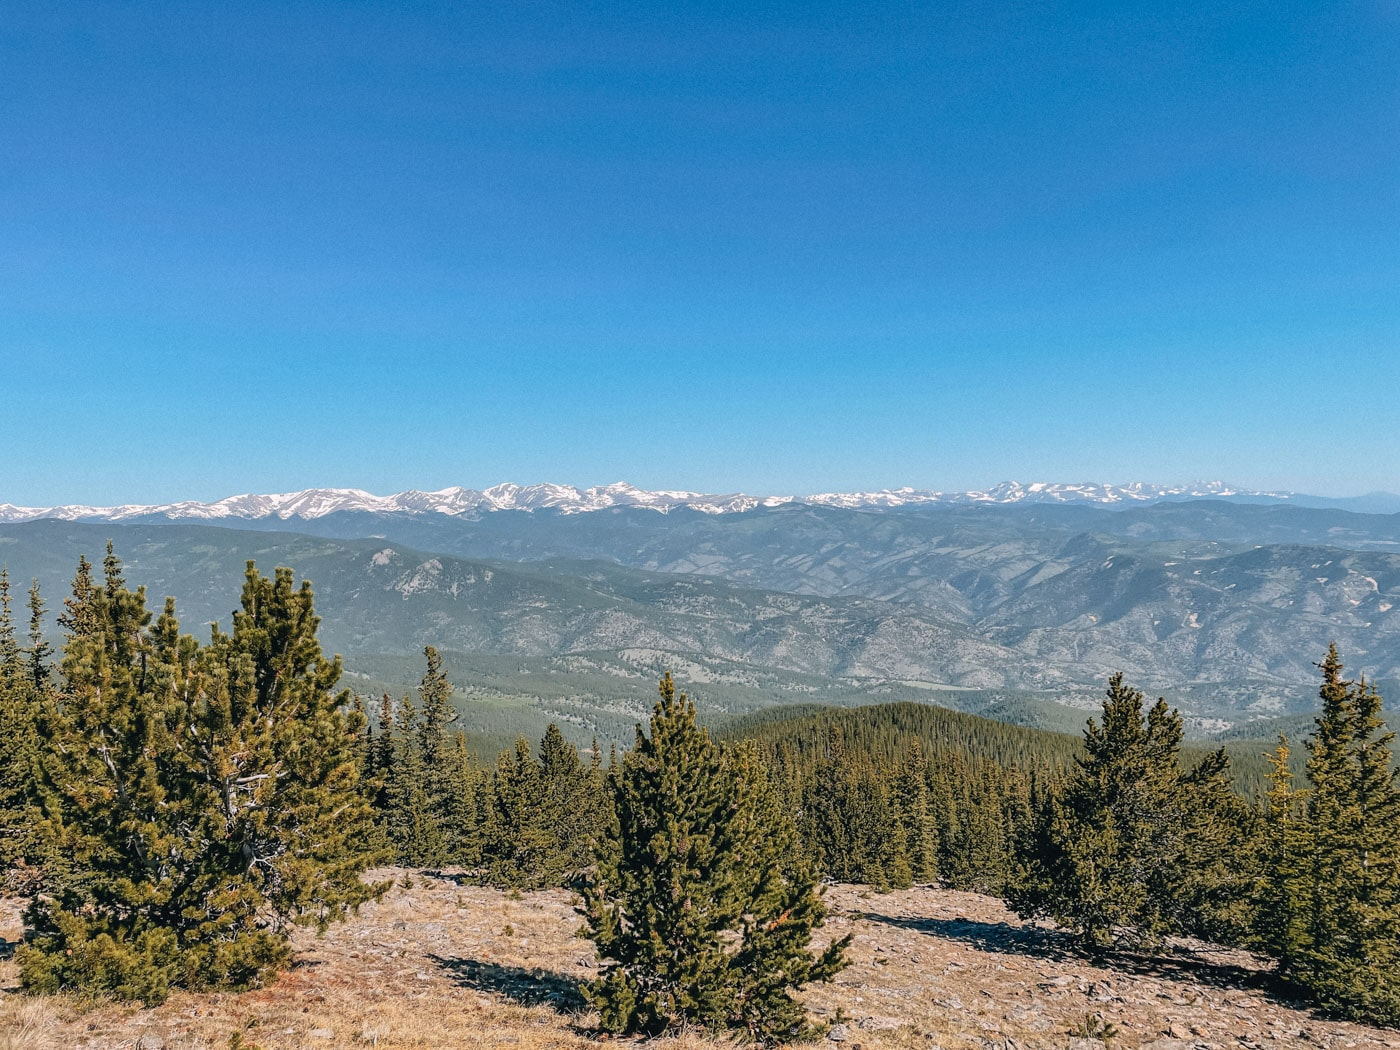 View from the top of Chief Mountain Trail, Evergreen, Colorado